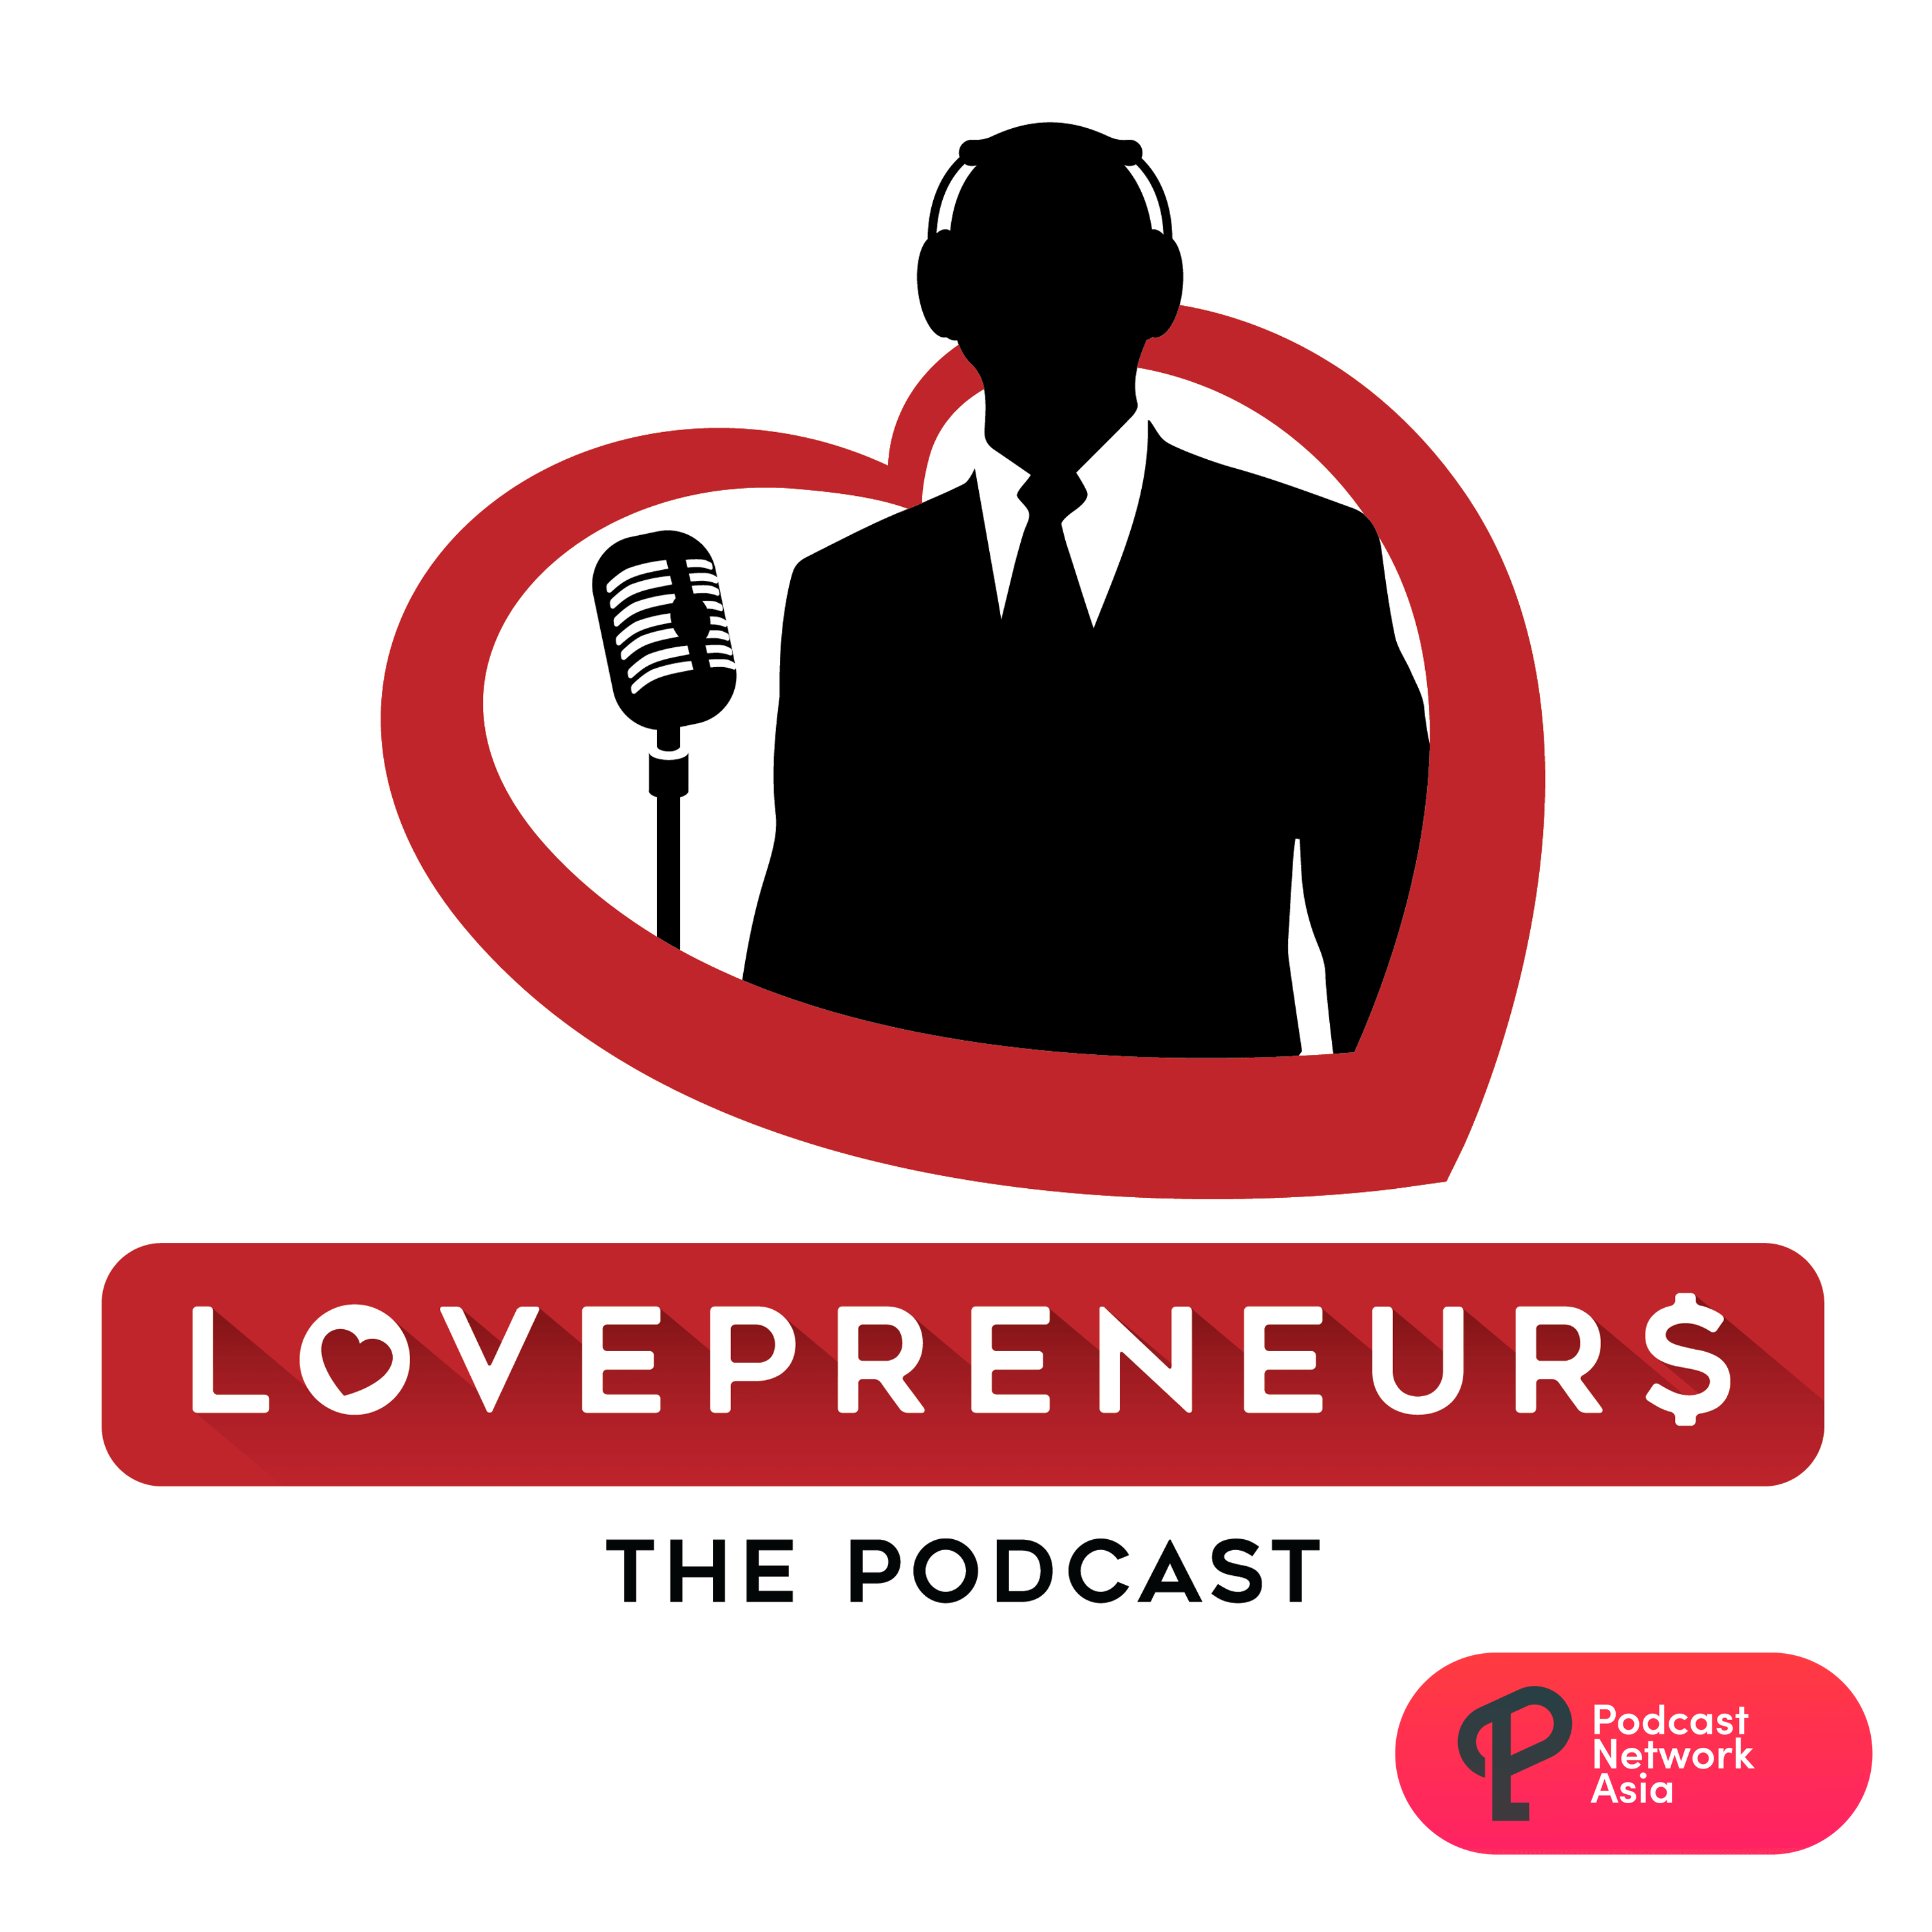 Welcome to LovePreneurs